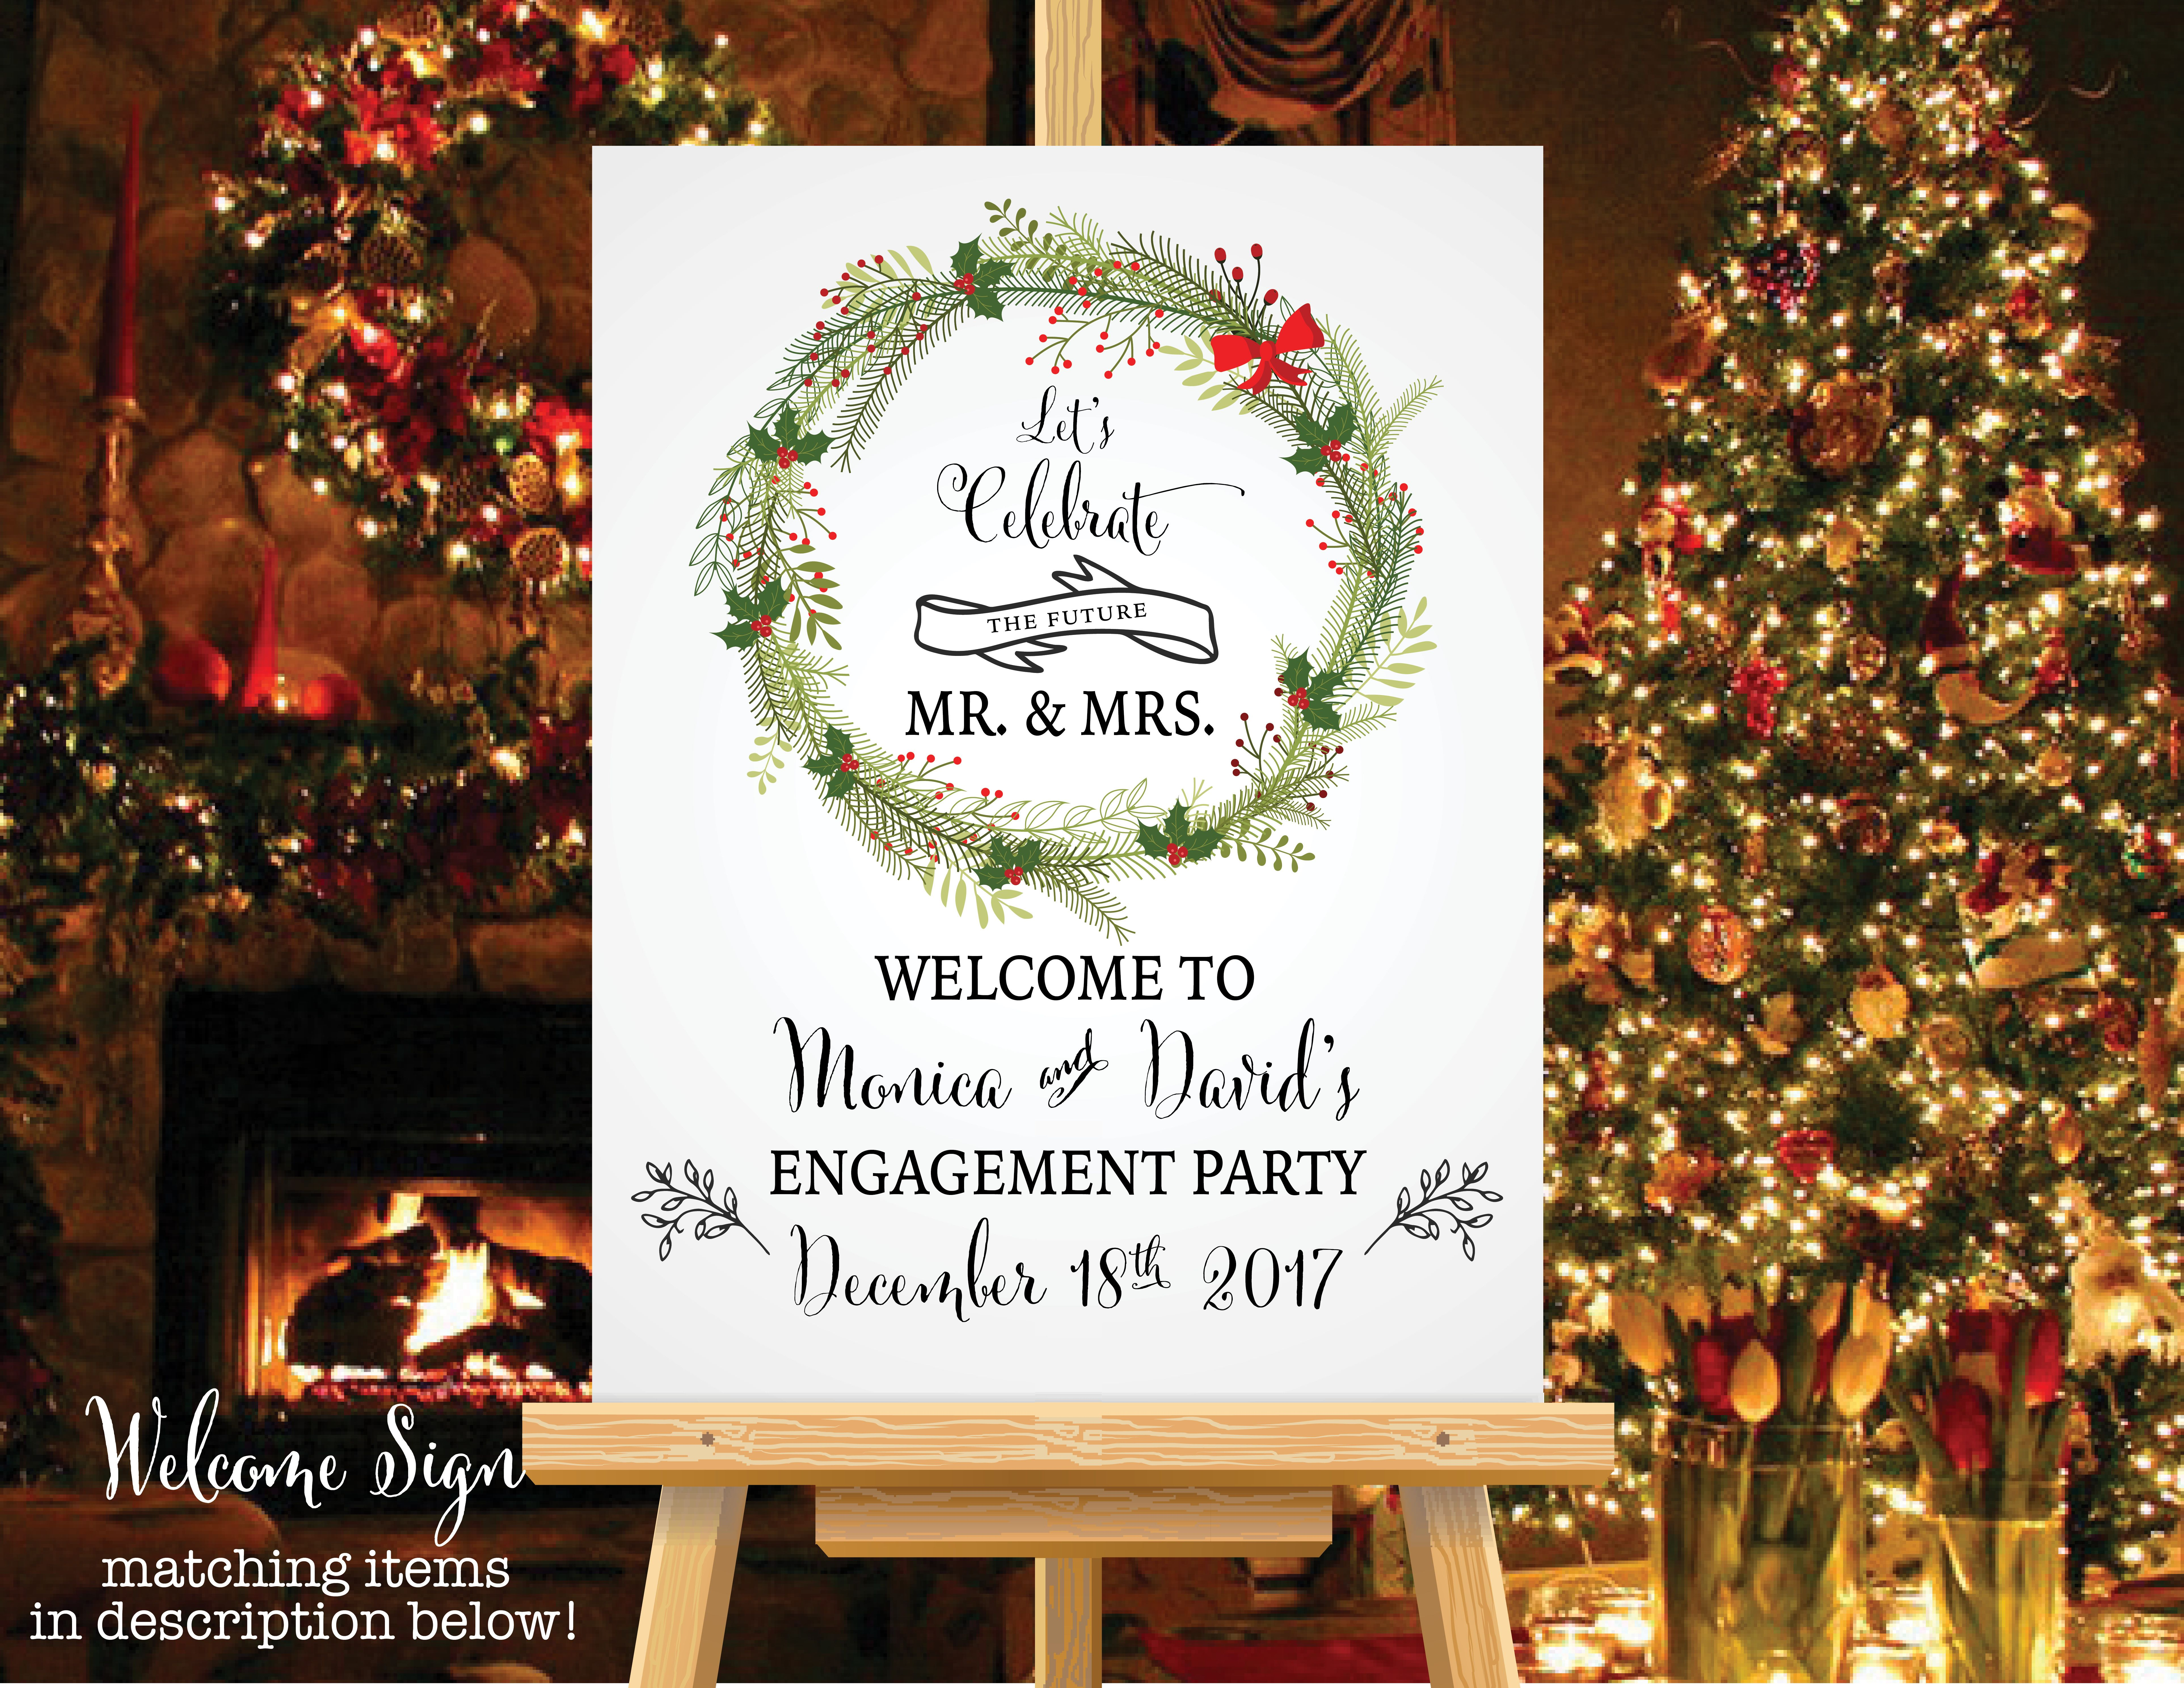 Christmas Engagement Party Ideas Part - 32: Christmas Engagement Party Welcome Sign - $8